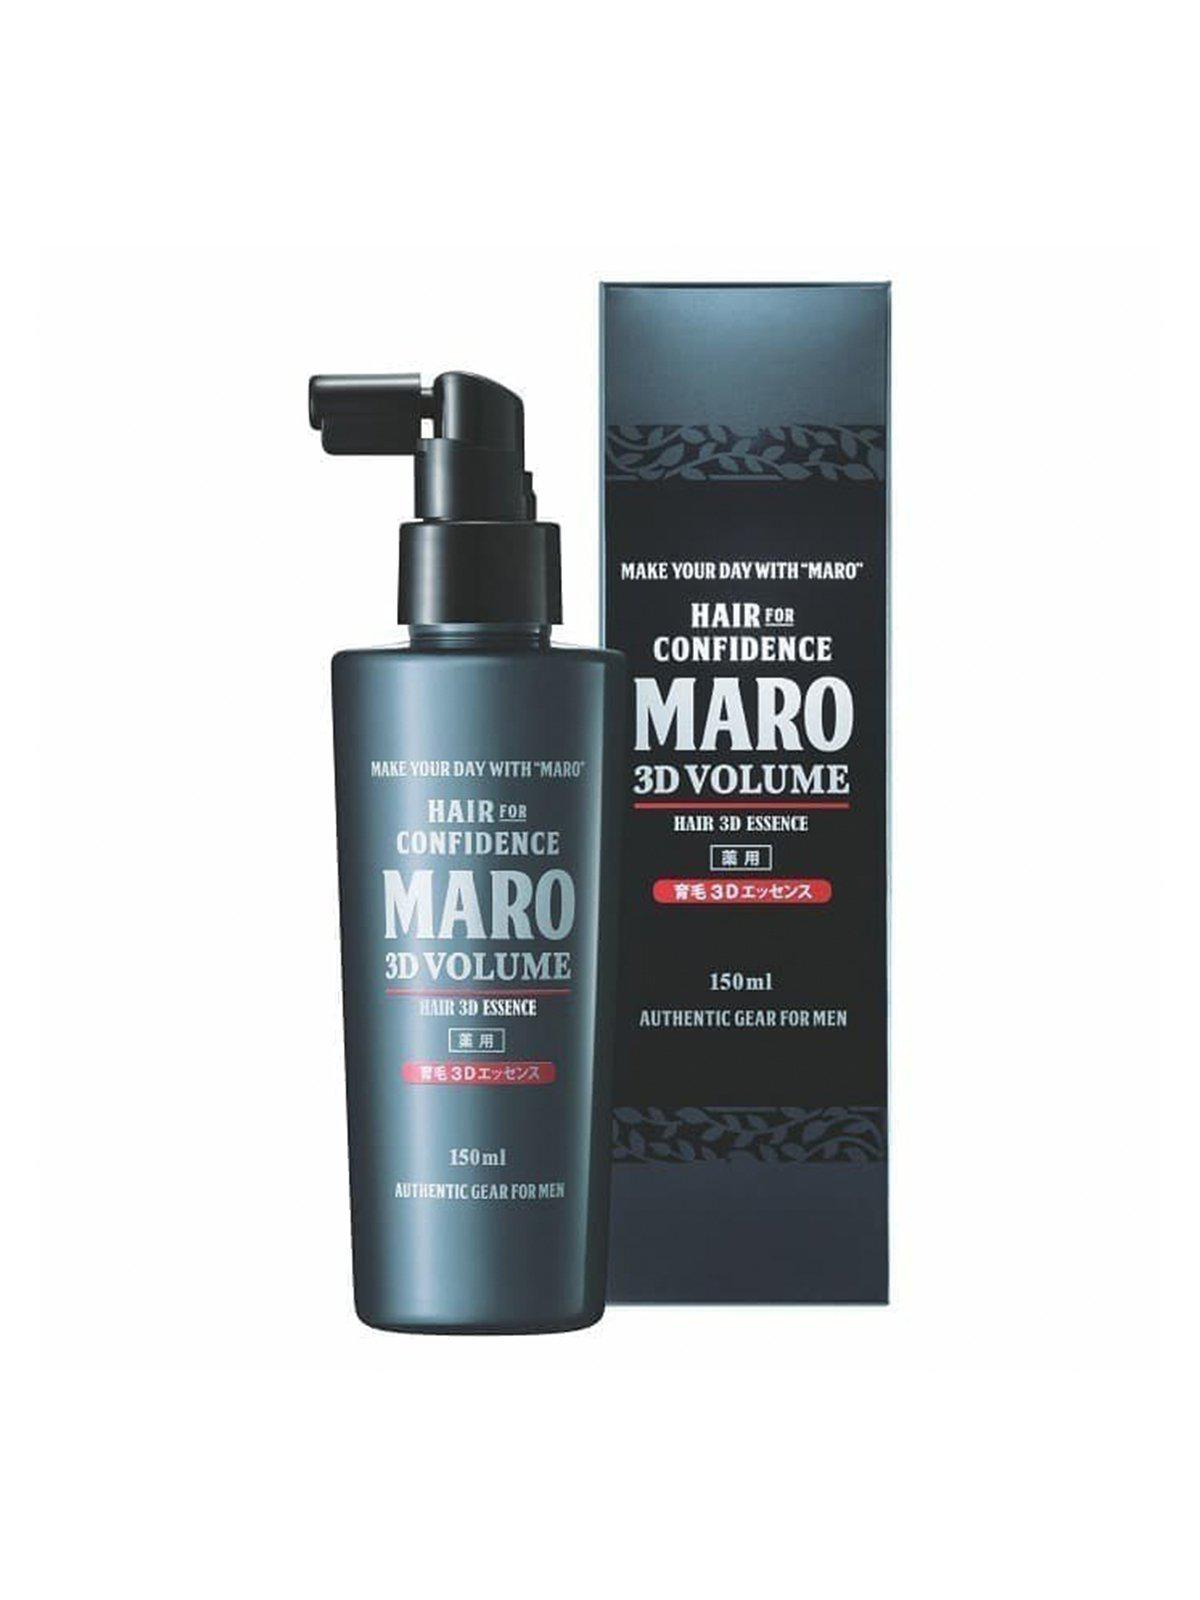 MARO 3D Volume Hair Essence 150ml - MORE by Morello Indonesia